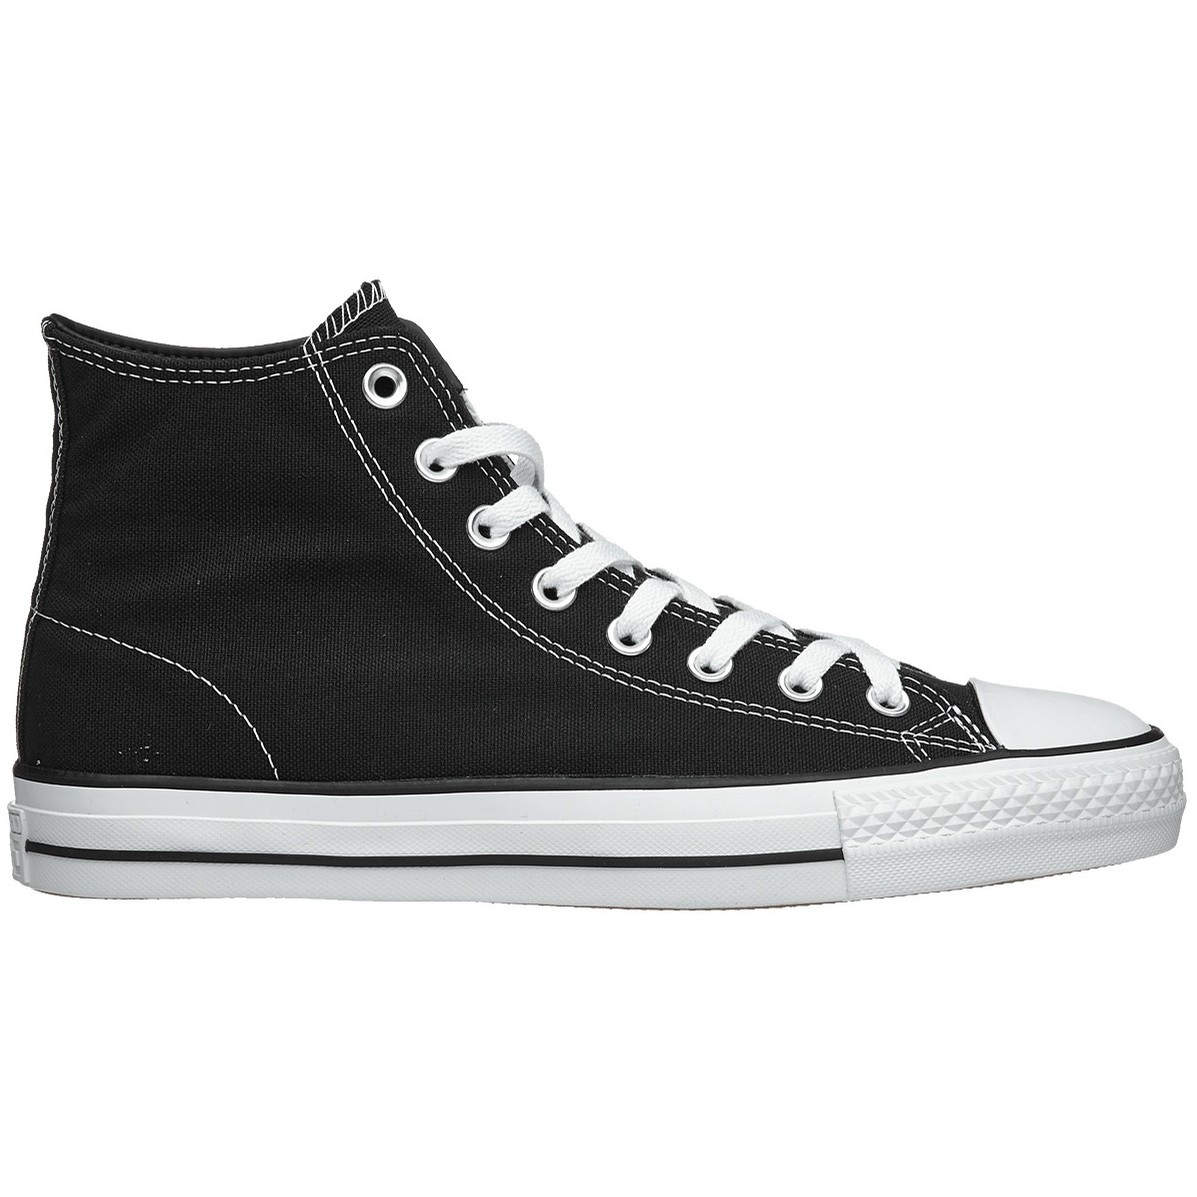 CTAS Pro Hi (Canvas) Black/Black/White